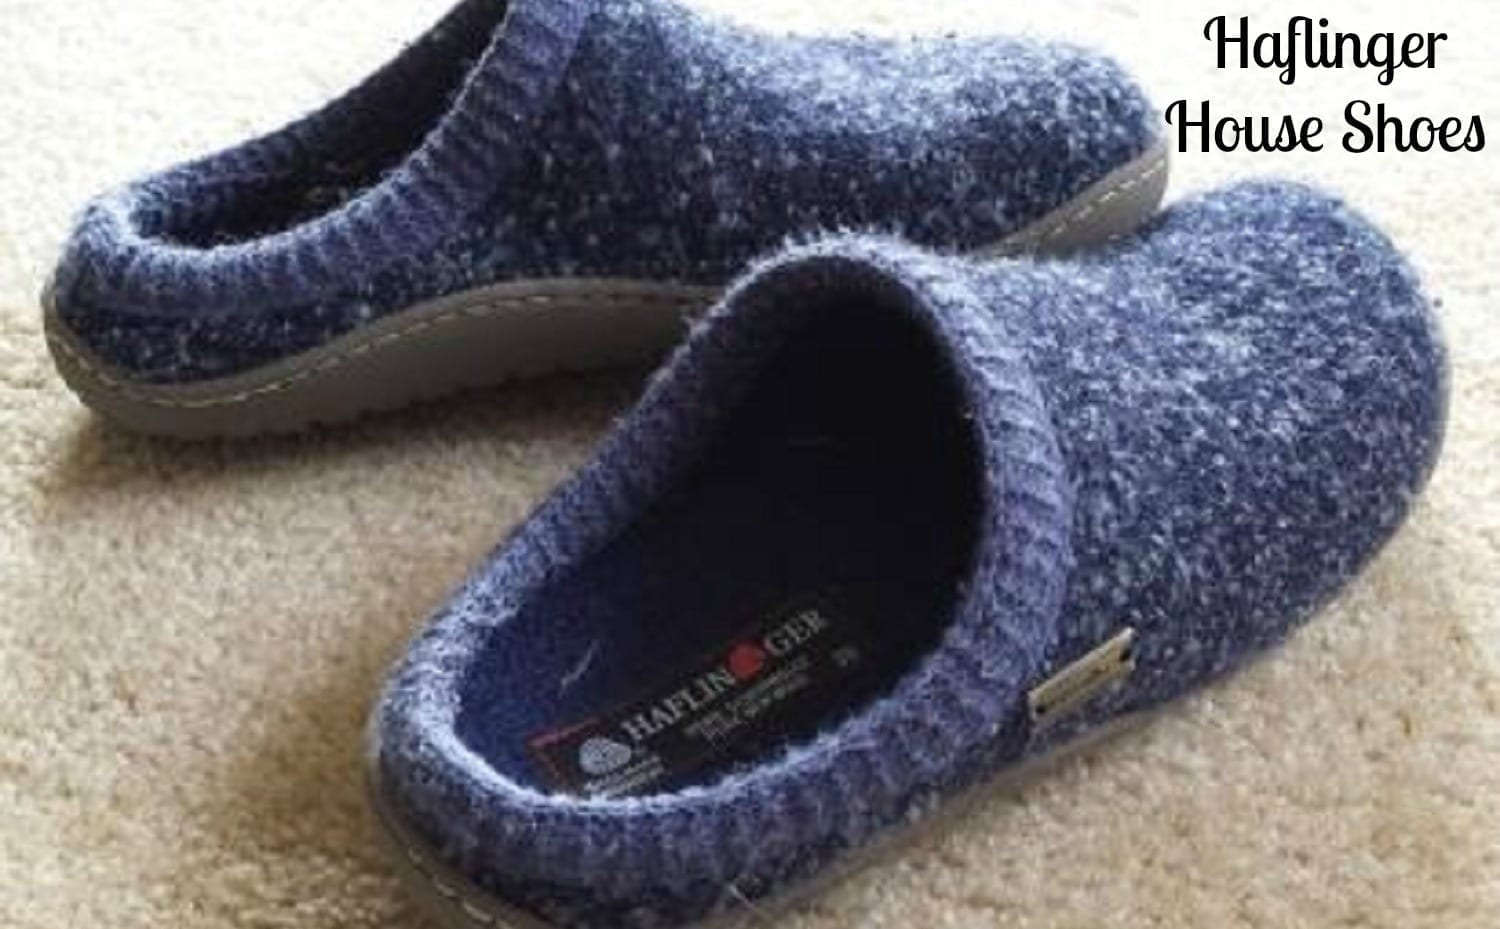 Haflinger House Shoes-  German Hausschuhe to Keep Your Feet Warm